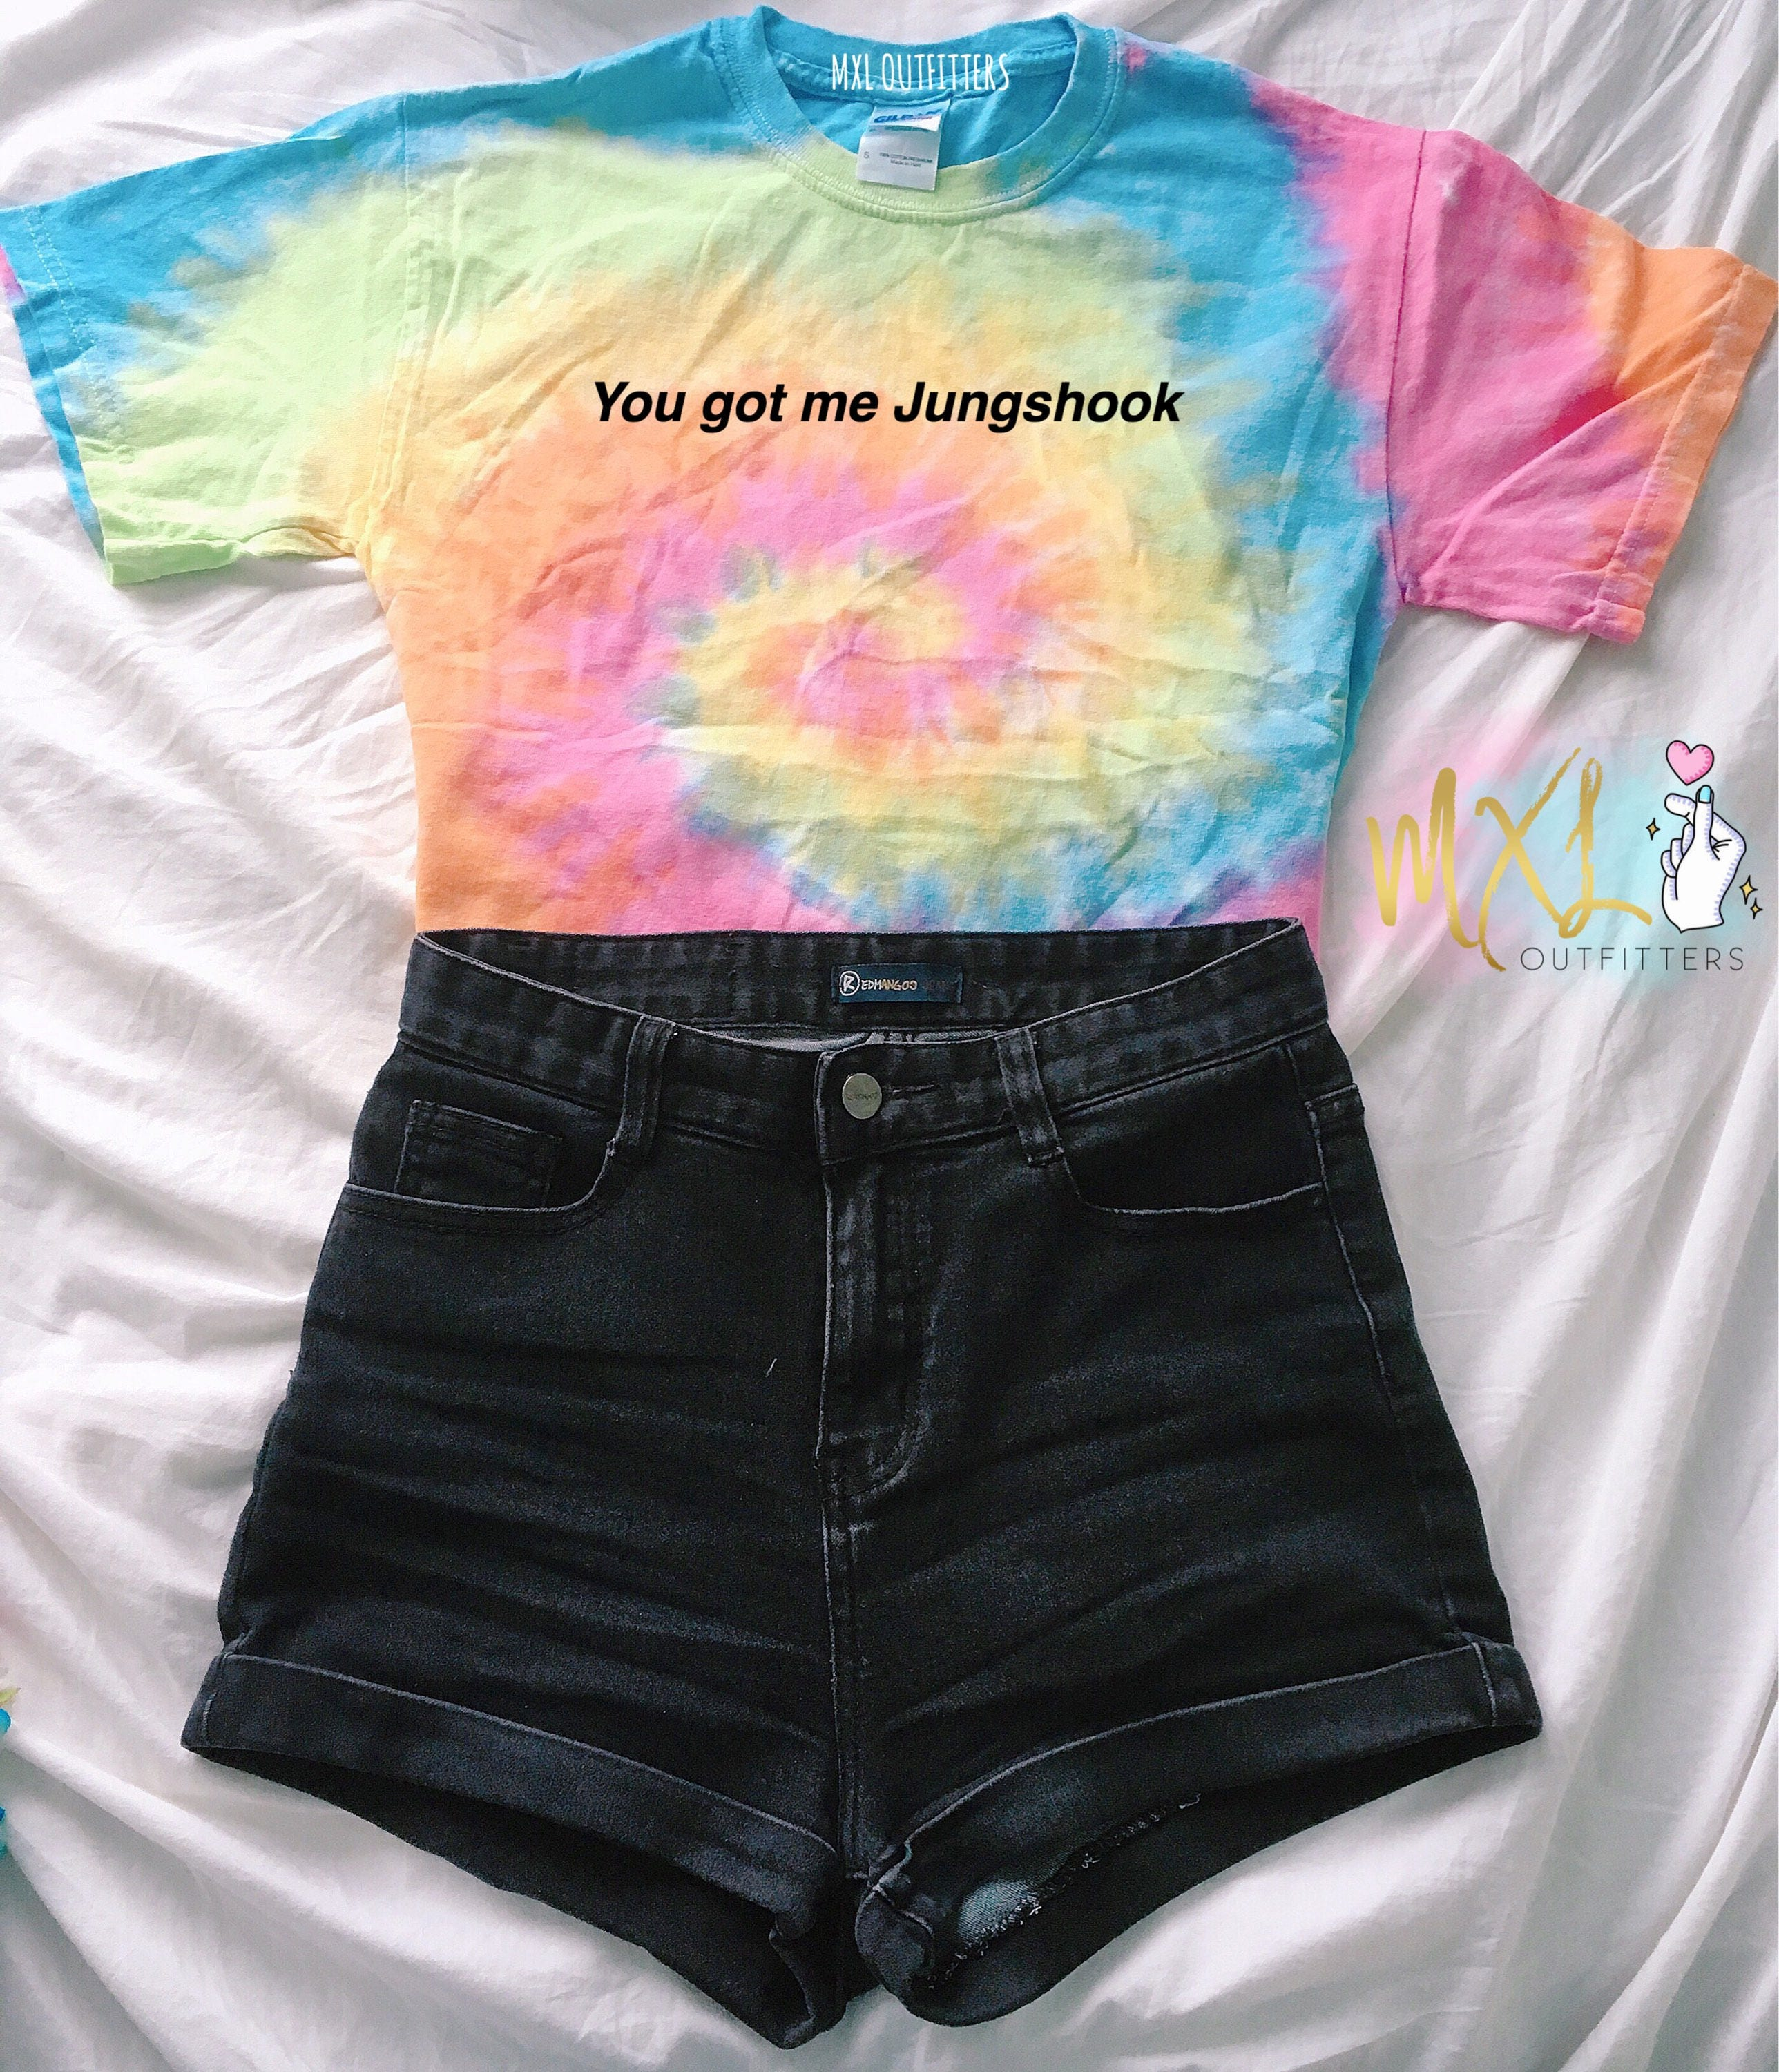 Tie dye bts jungshook t shirt design by maggie liu for How to wash tie dye shirt after dying